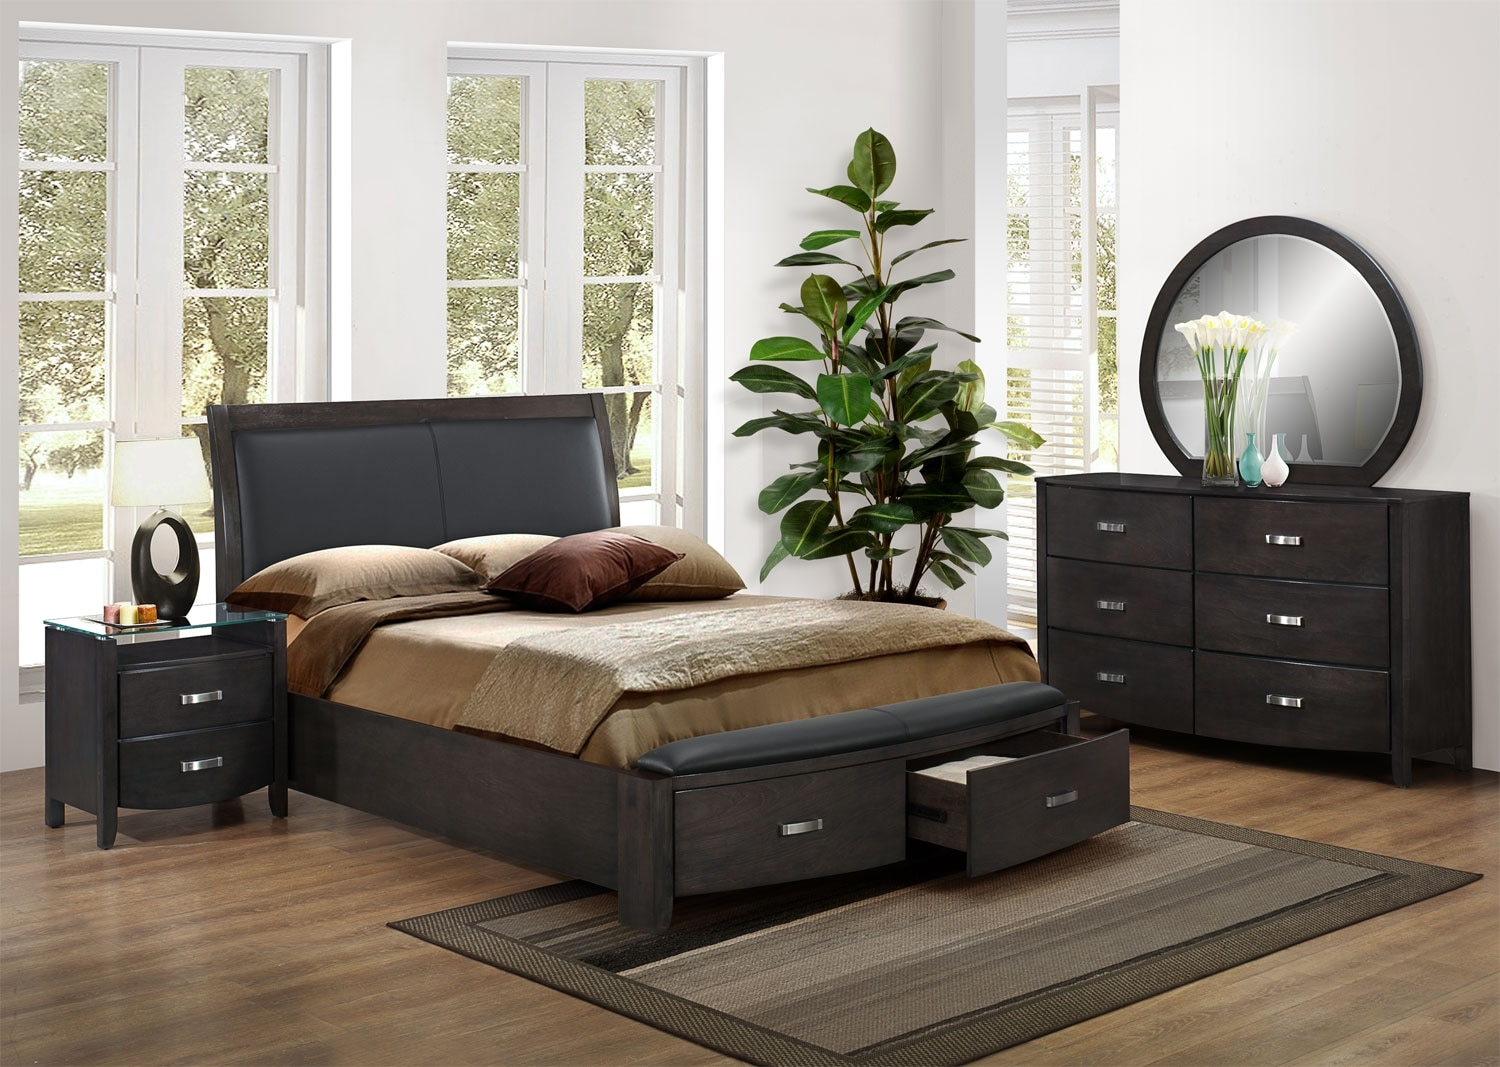 Bedroom Furniture - Cinema 5-Piece King Bedroom Set - Charcoal